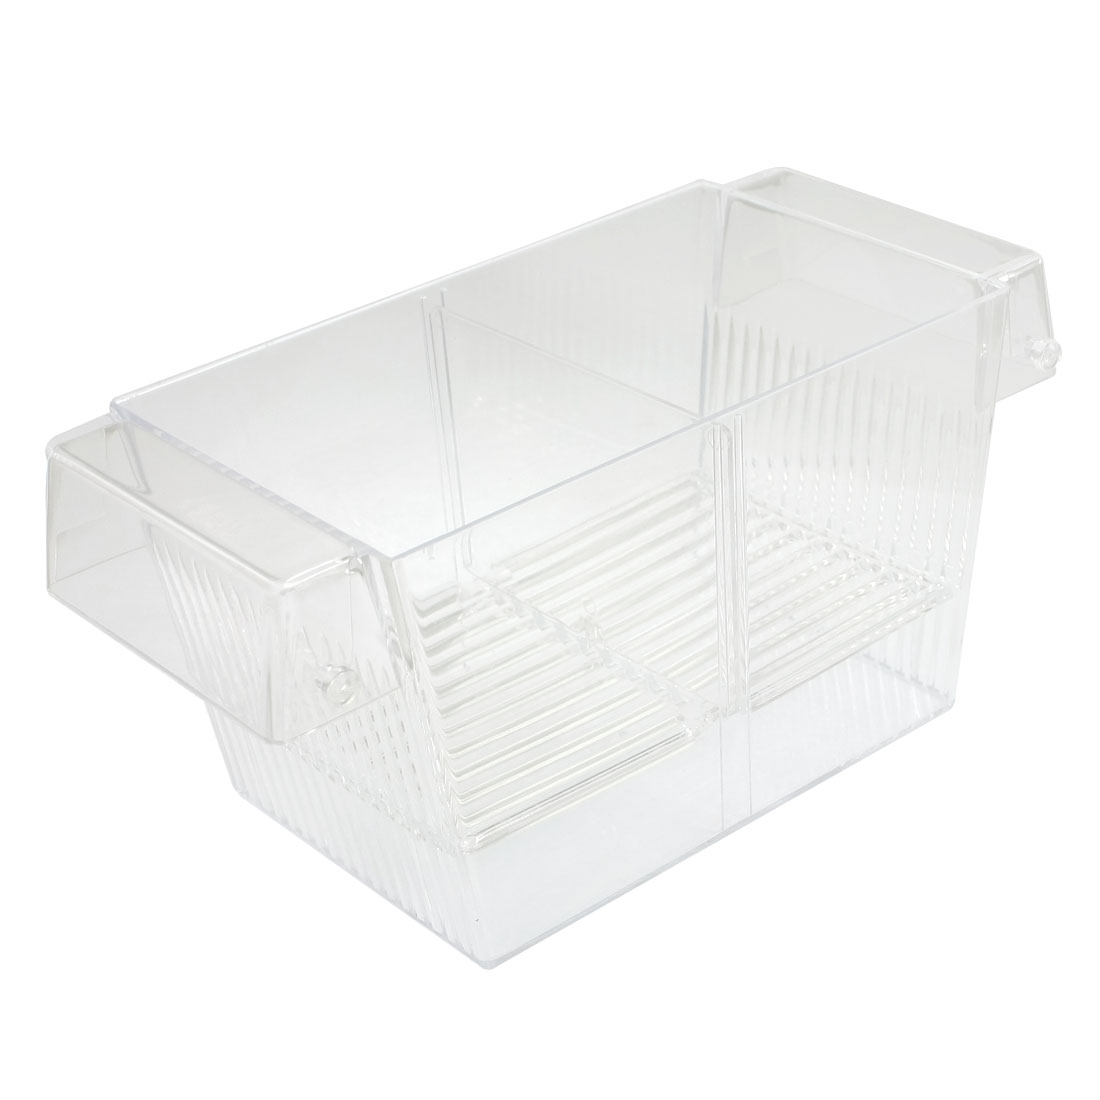 Aquarium-Plastic-Fish-Spawn-Hatchery-Breeder-Case-Box-Hfjvg